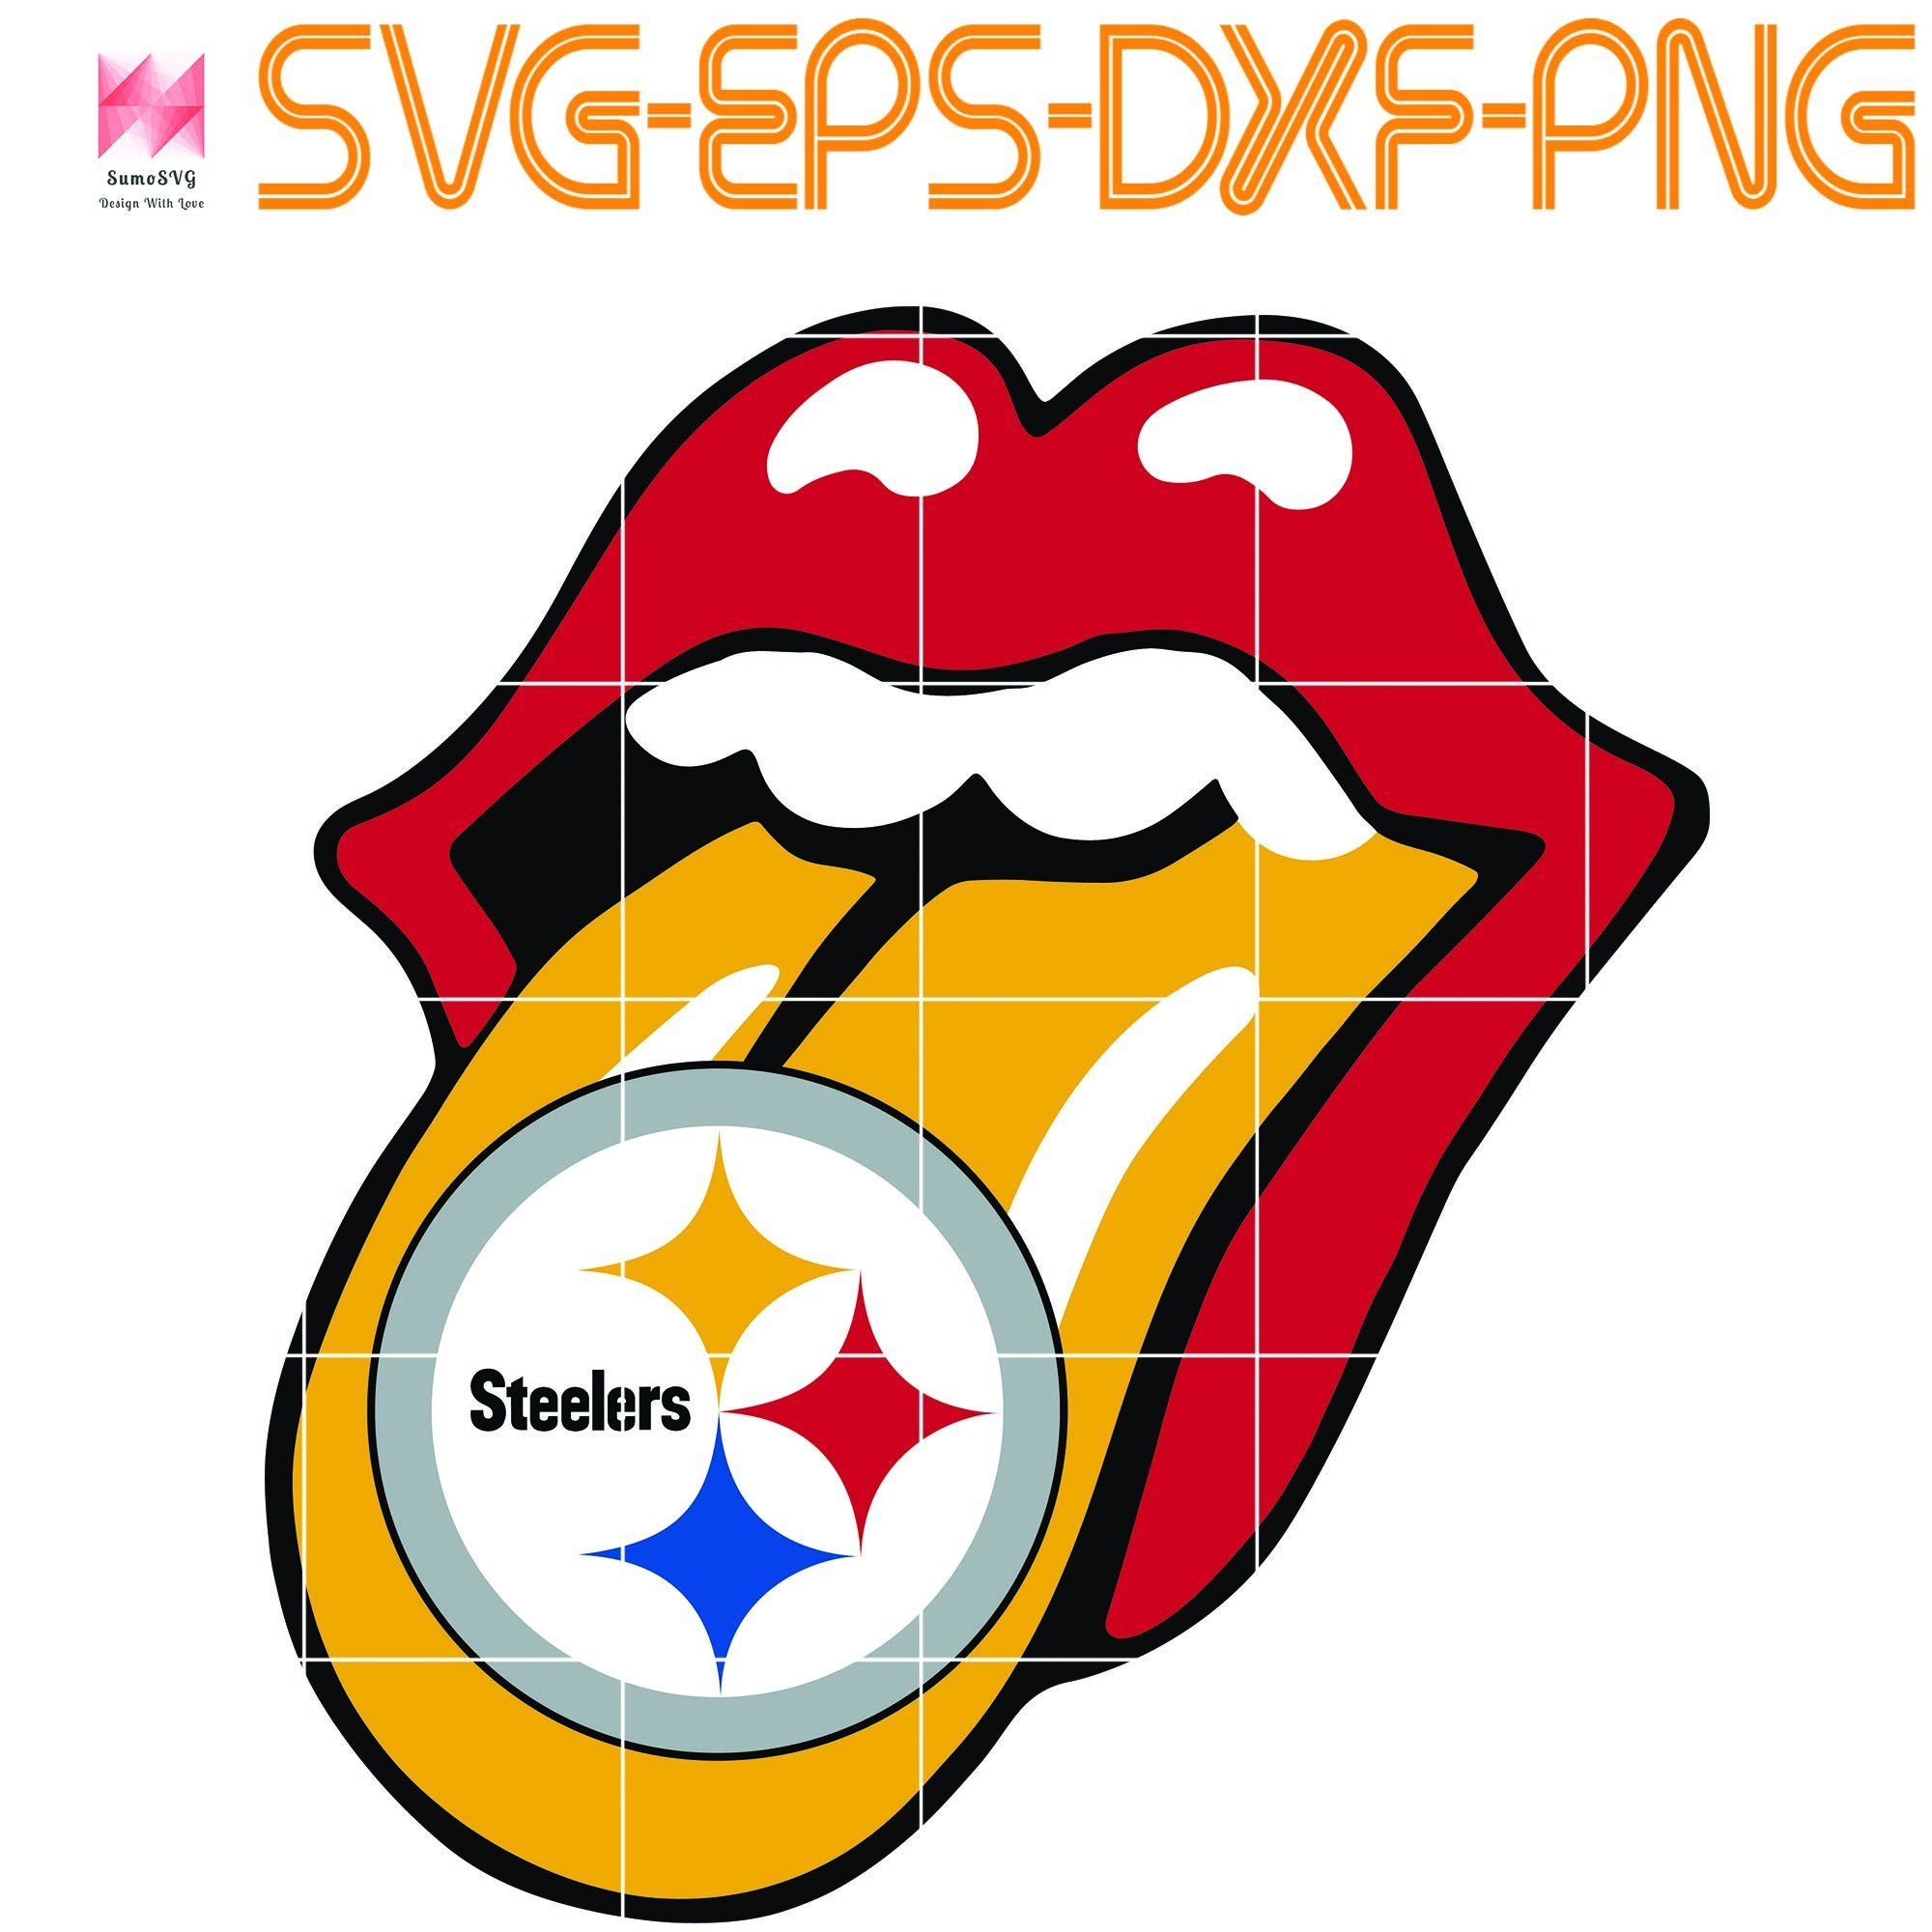 Pittsburgh Steelers Svg Steelers Svg Steelers Girl Svg Steelers Boy Svg Steelers Mom Svg Nfl Svg Football Svg Dna Fueled By Haters Lip Skull Svg Ep Steelers Girl Steelers Pittsburgh